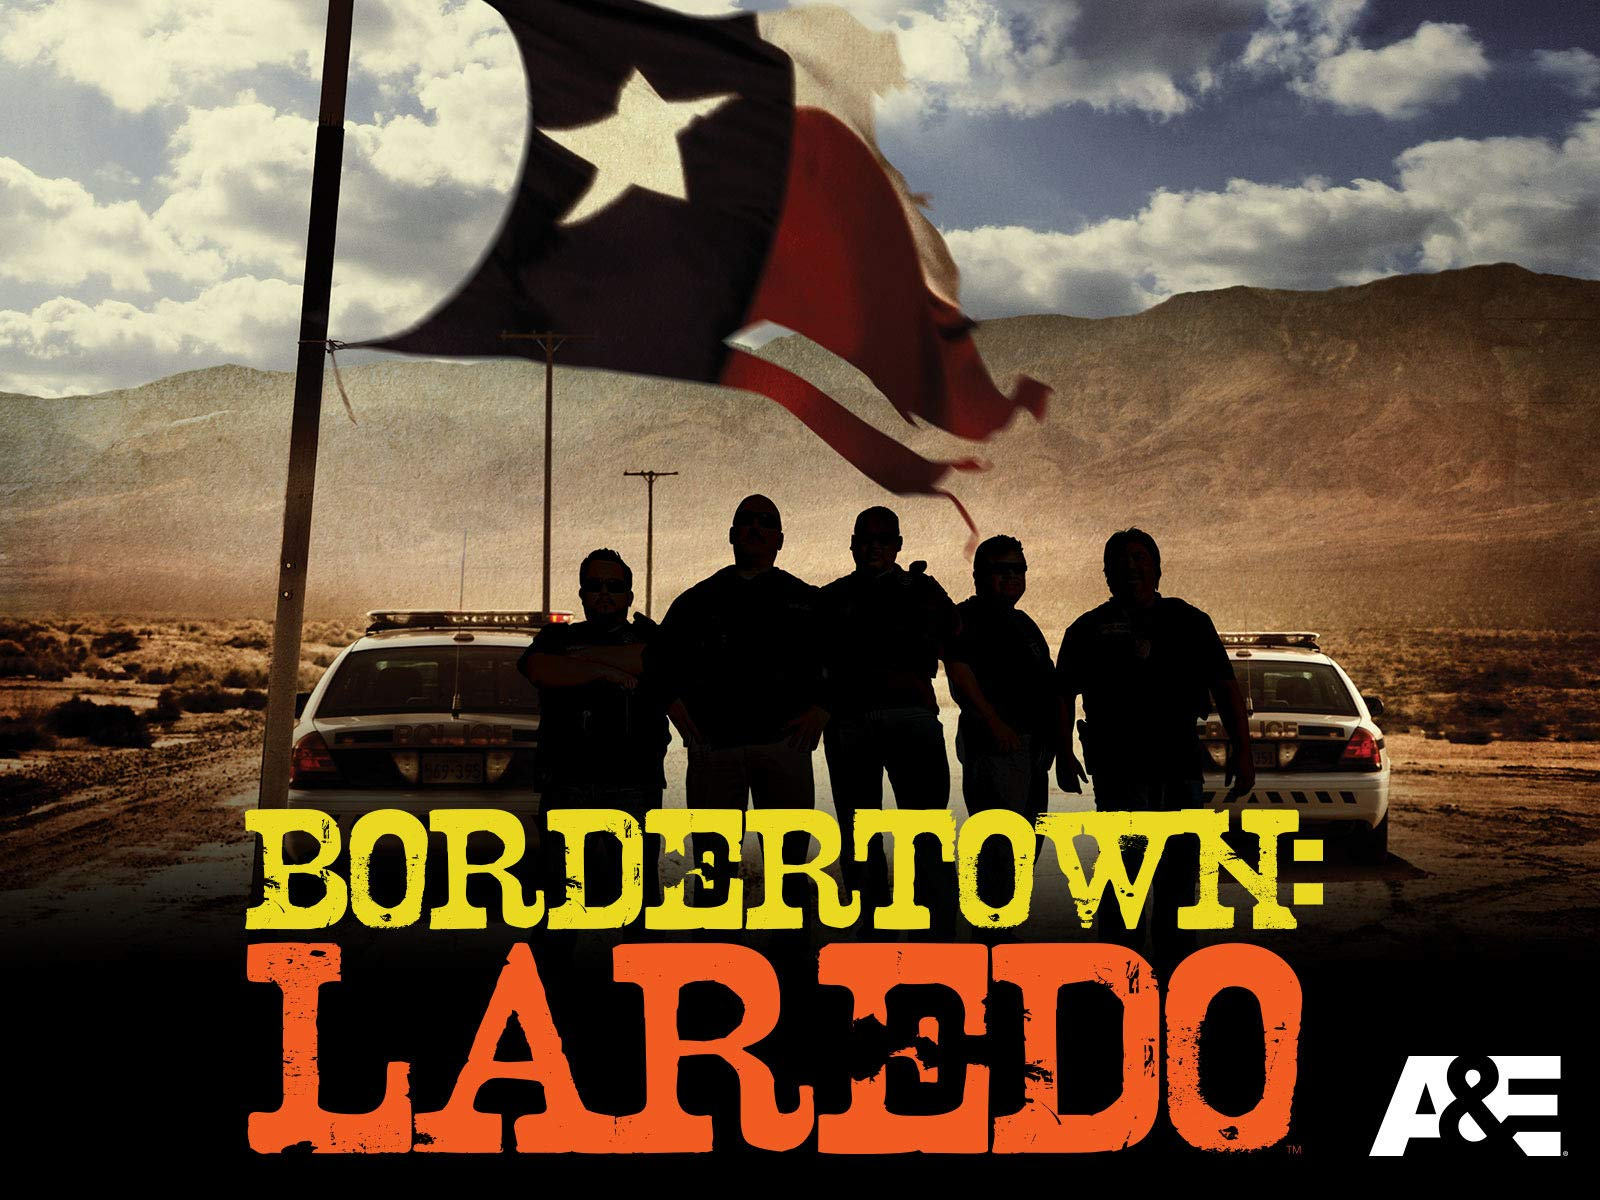 Amazon.com: Bordertown: Laredo: N/A